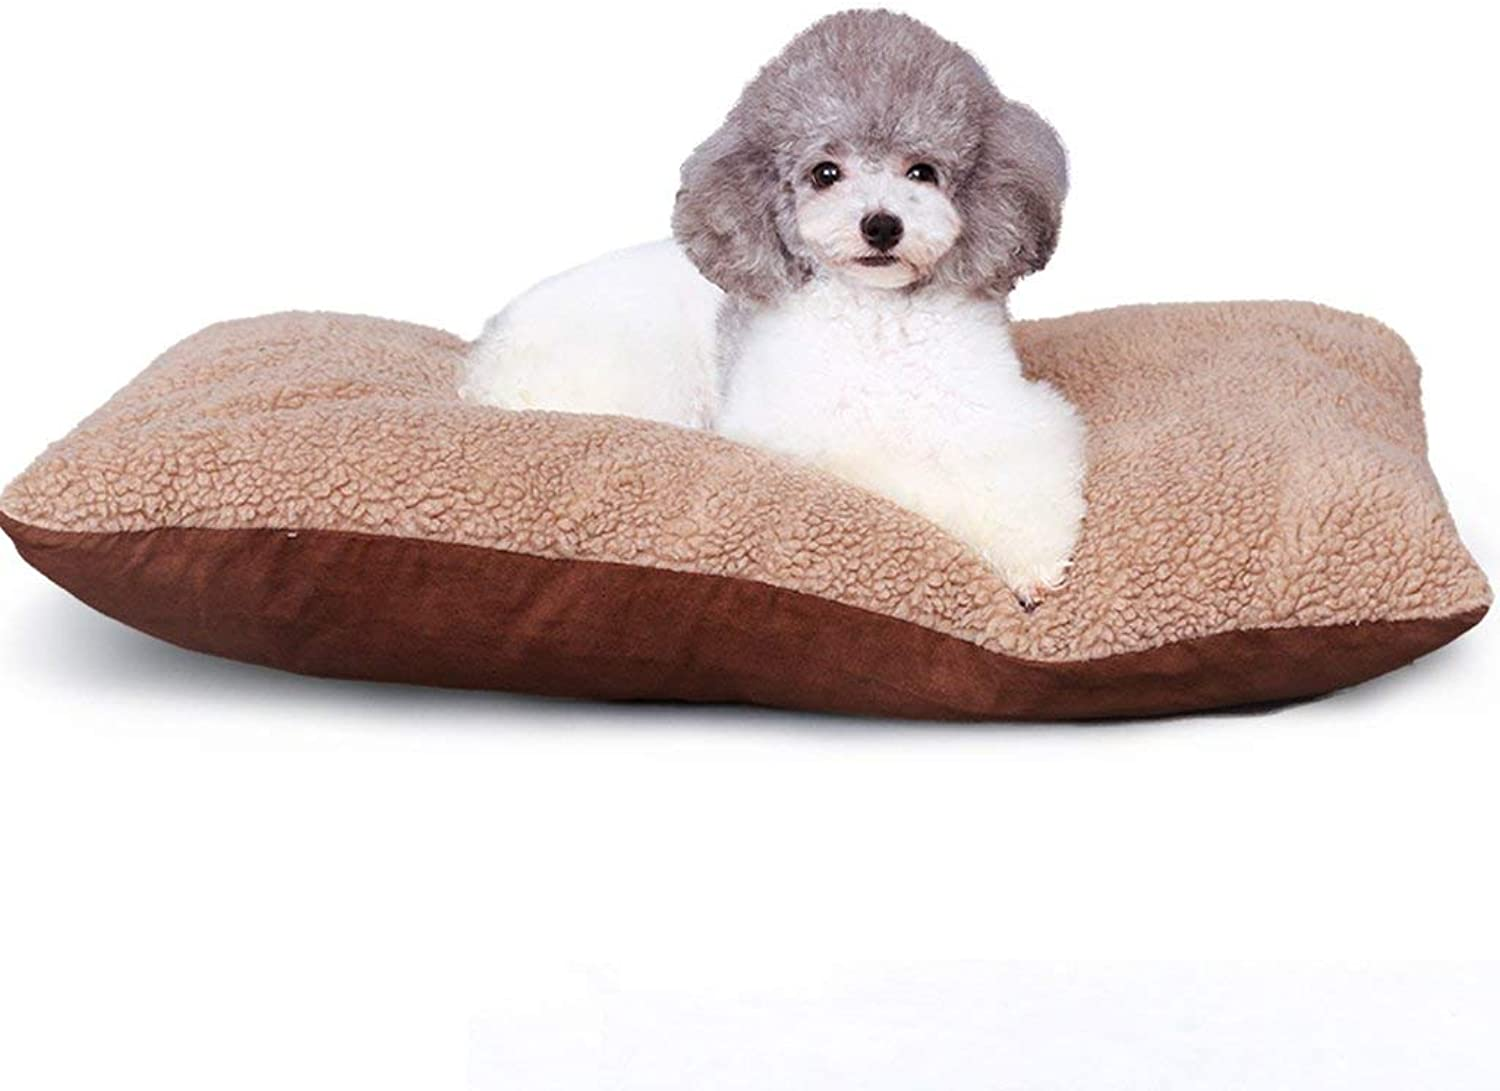 Gperw Soft cats dogs cushions pet bed cozy dog bed Non Slip Cushion Pad (Size   M)